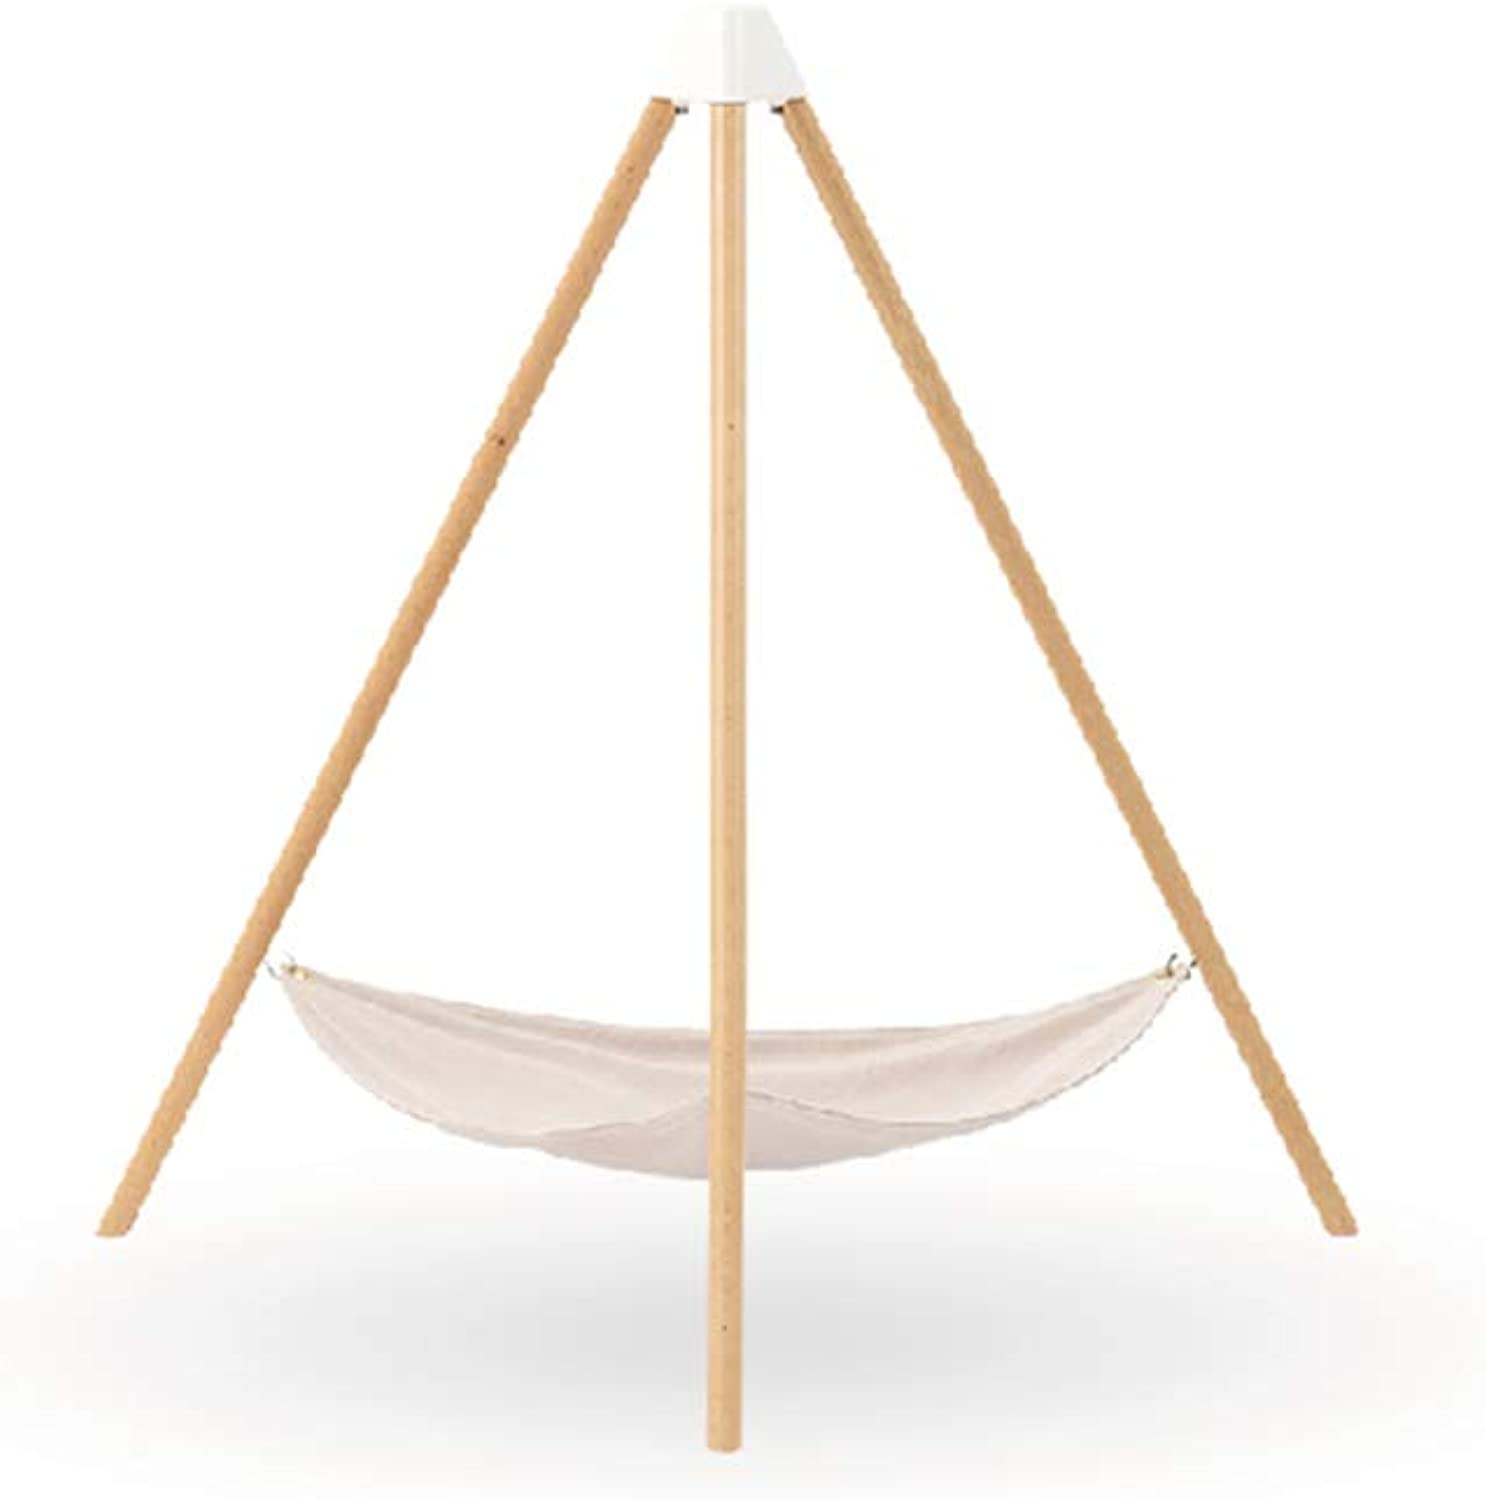 Pidan cat Hammock Bed cat Hanging Bed with Stand Natural and Beech Chenille Velvet for a Gentle Touch